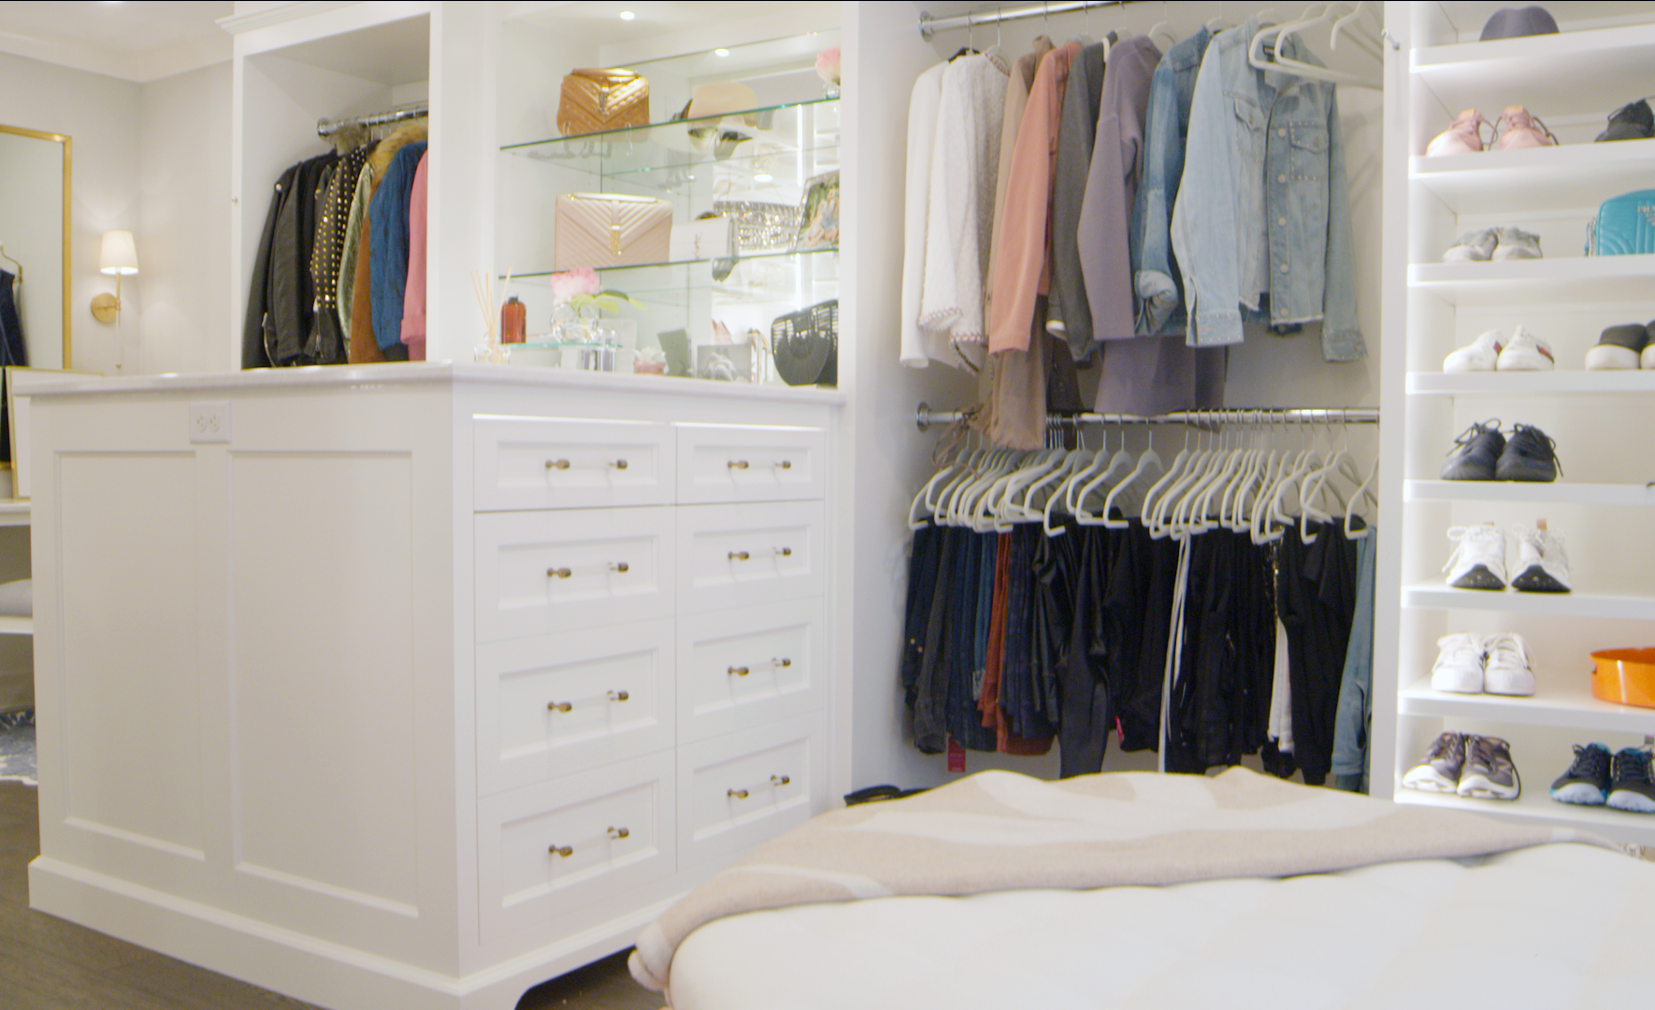 A view of Carly Zucker's organized closet.